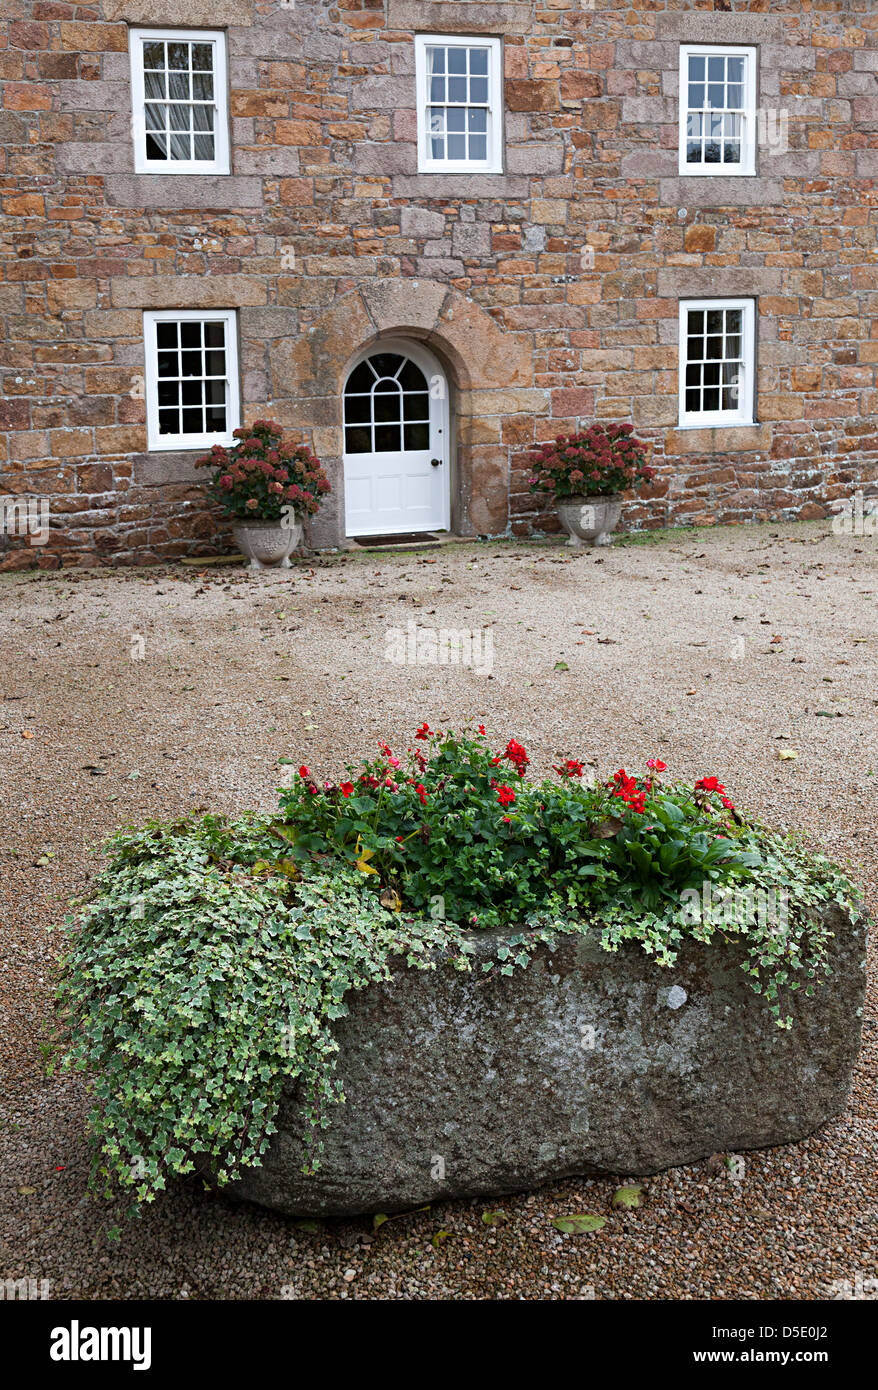 Flowers growing in stone trough outside country house, Jersey, Channel Islands, UK - Stock Image